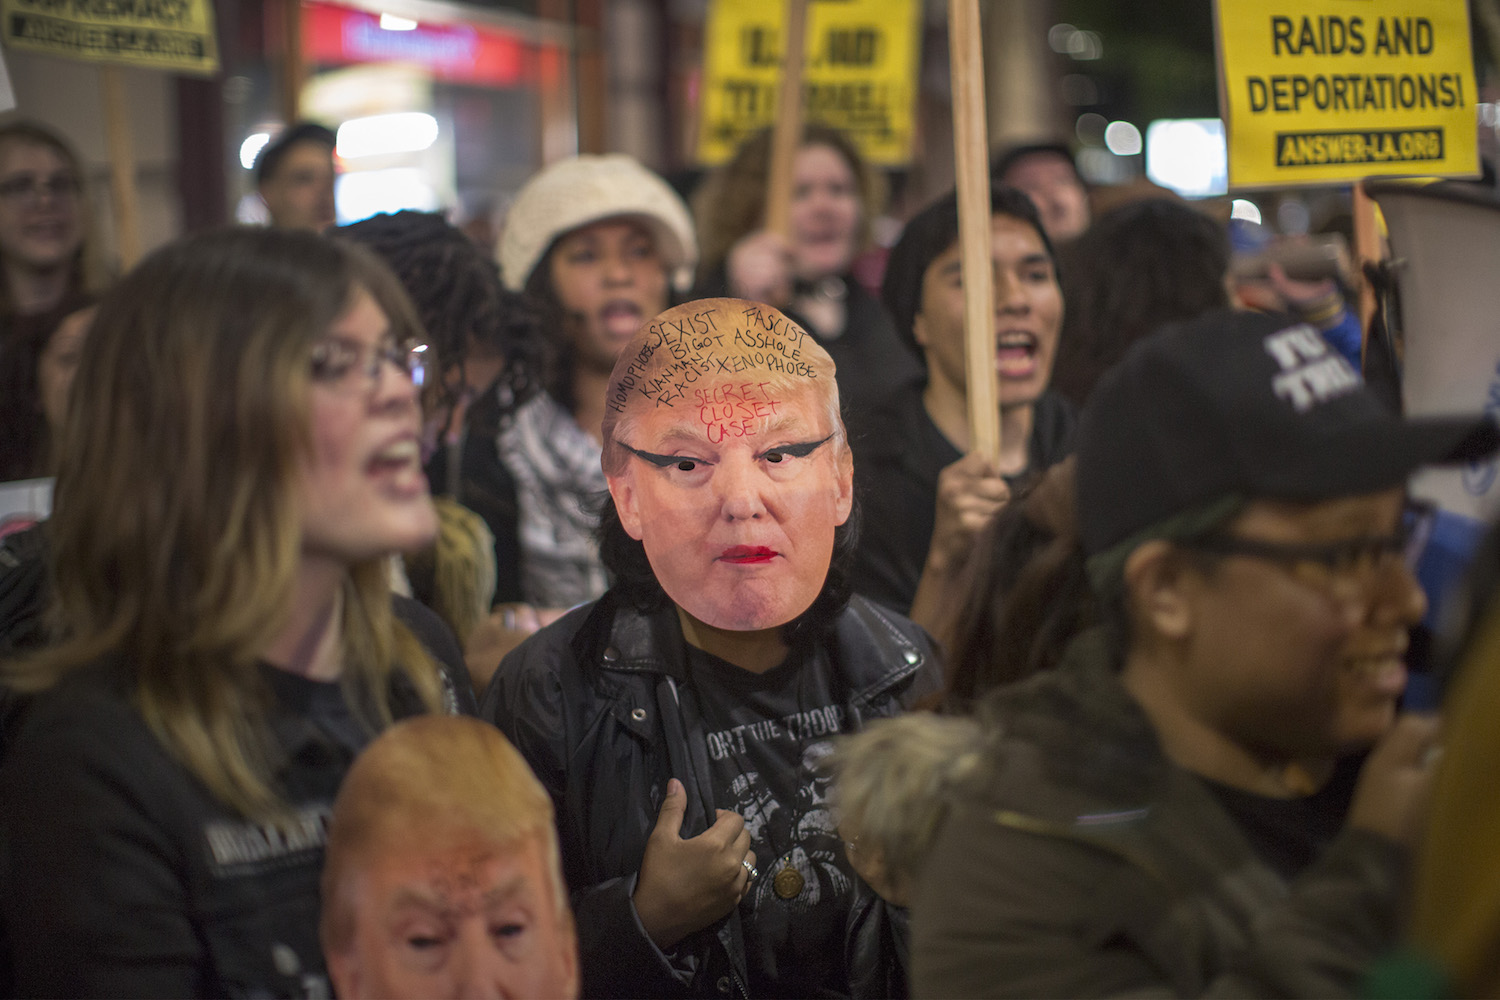 Anti-Trump protesters rally outside the InterContinental Los Angeles Downtown hotel where U.S. President Donald Trump is spending the night during his first visit to California since taking office on March 13, in Los Angeles, California. Earlier today, the president visited border wall prototypes, addressed Marines and held a high-dollar fundraiser. (Photo by David McNew/Getty Images)